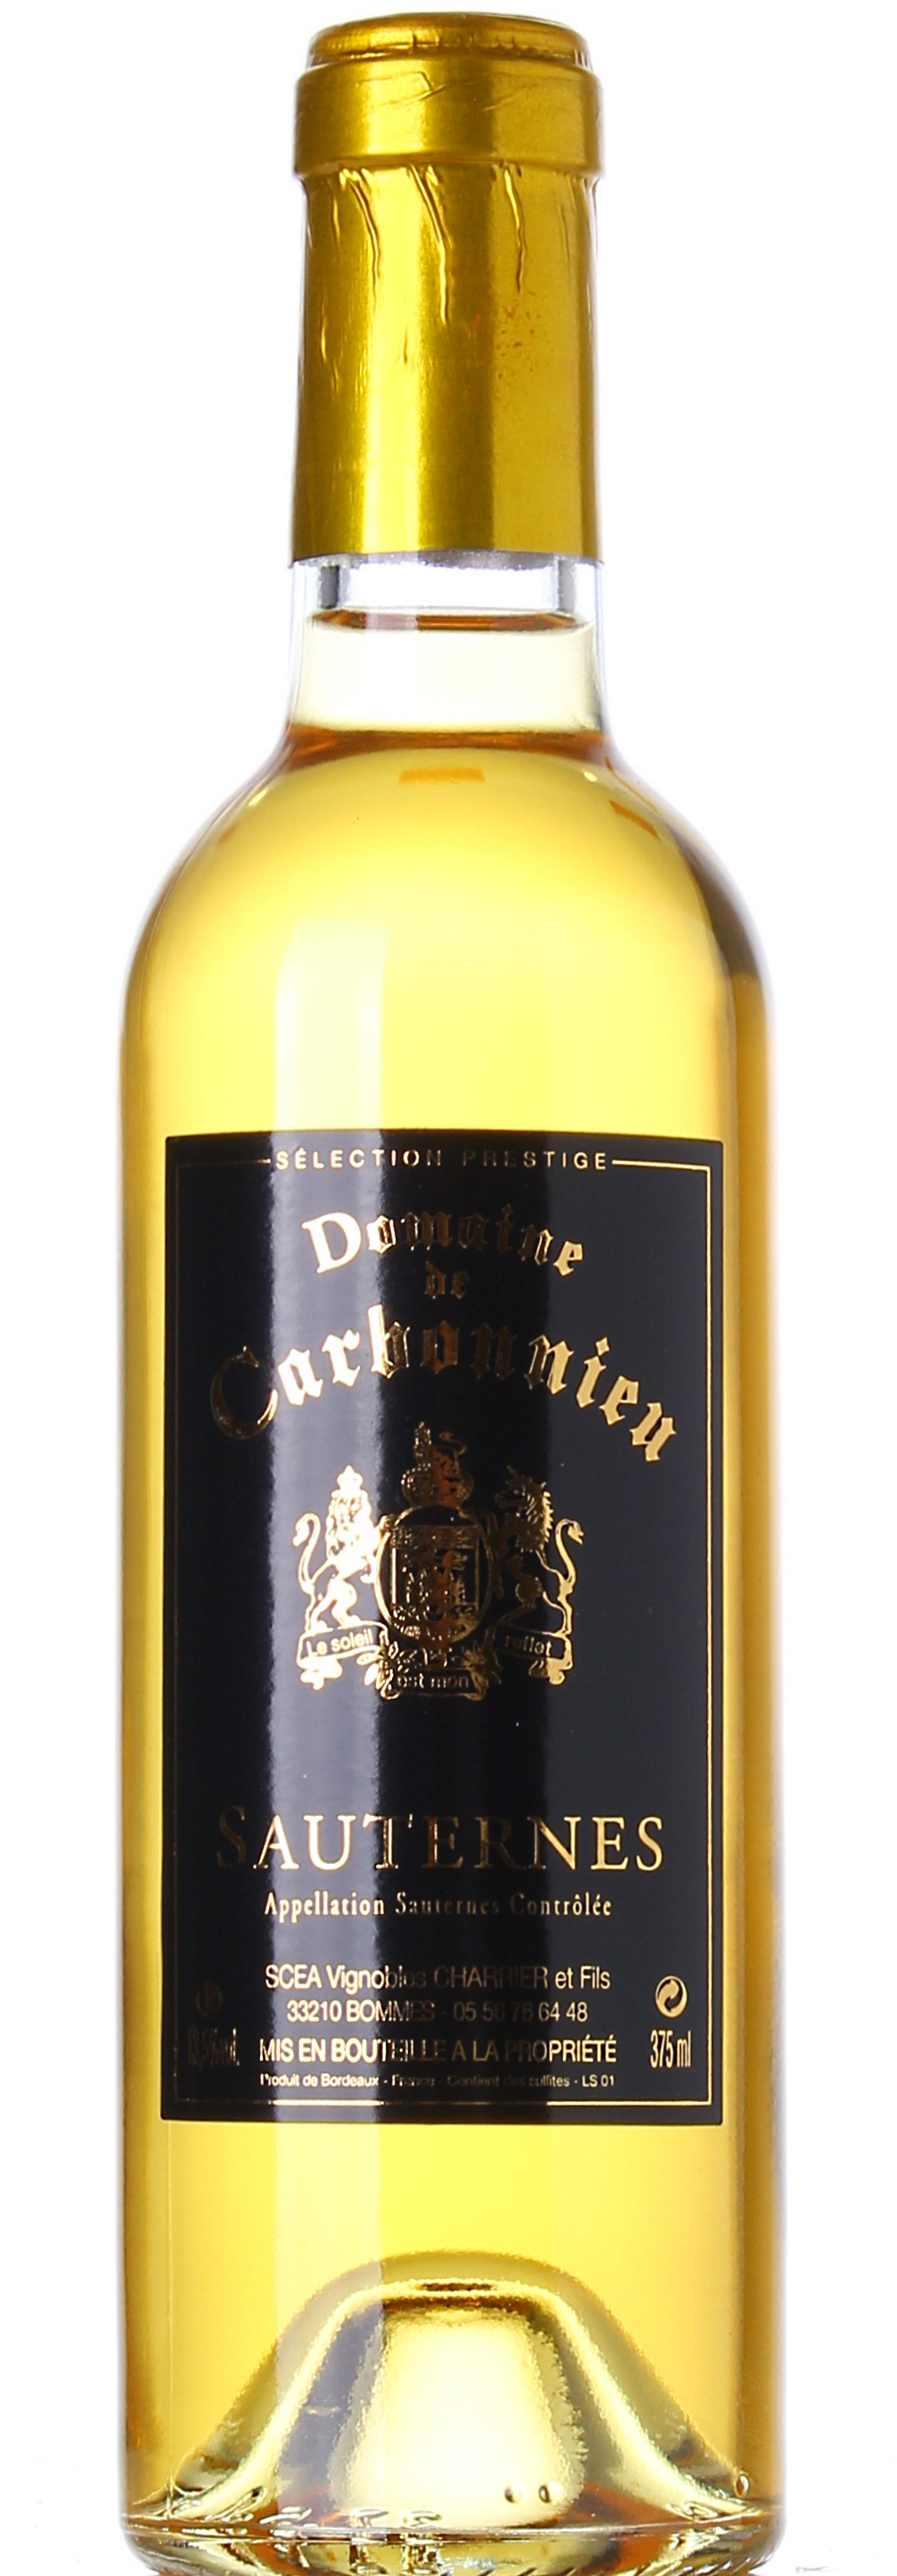 DOMAINE DE CARBONNIEU SAUTERNES SELECTION 2012